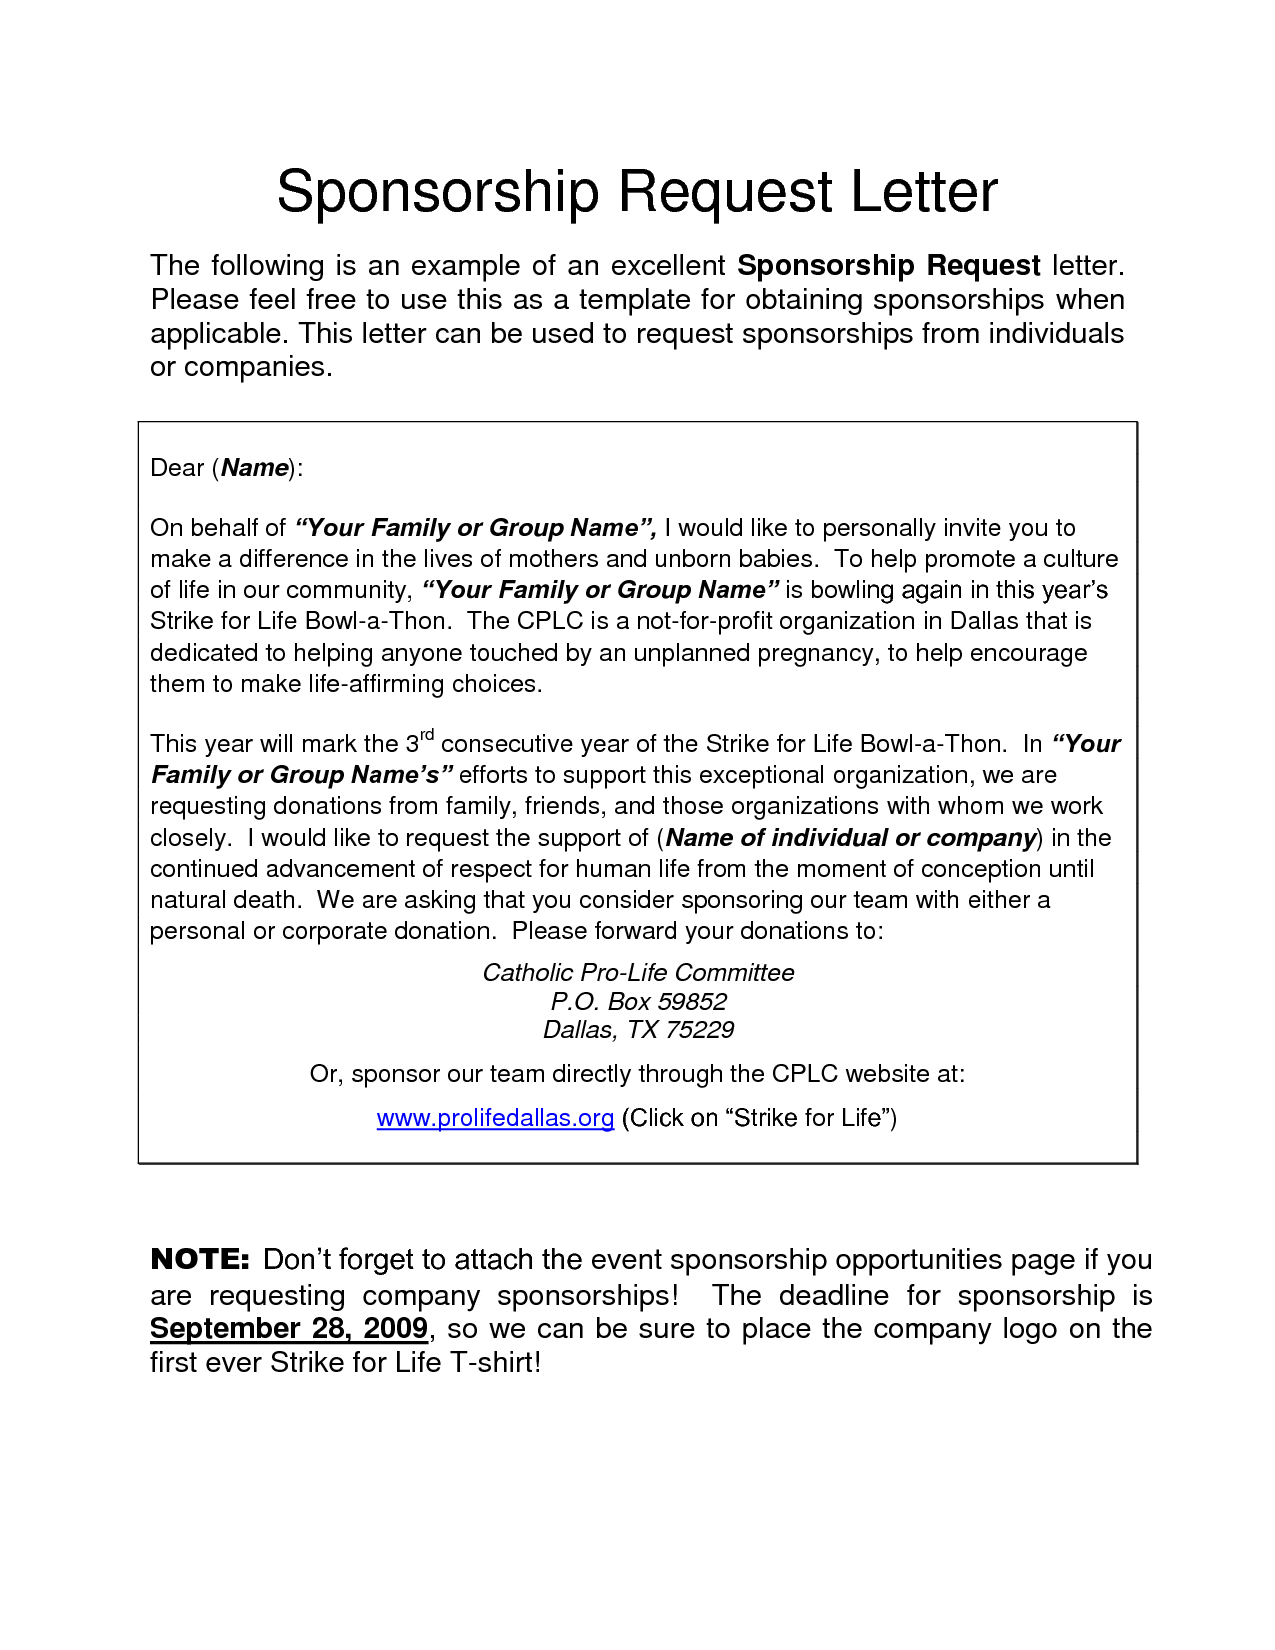 Corporate Sponsorship Request Letter Charity Donation Free Sample